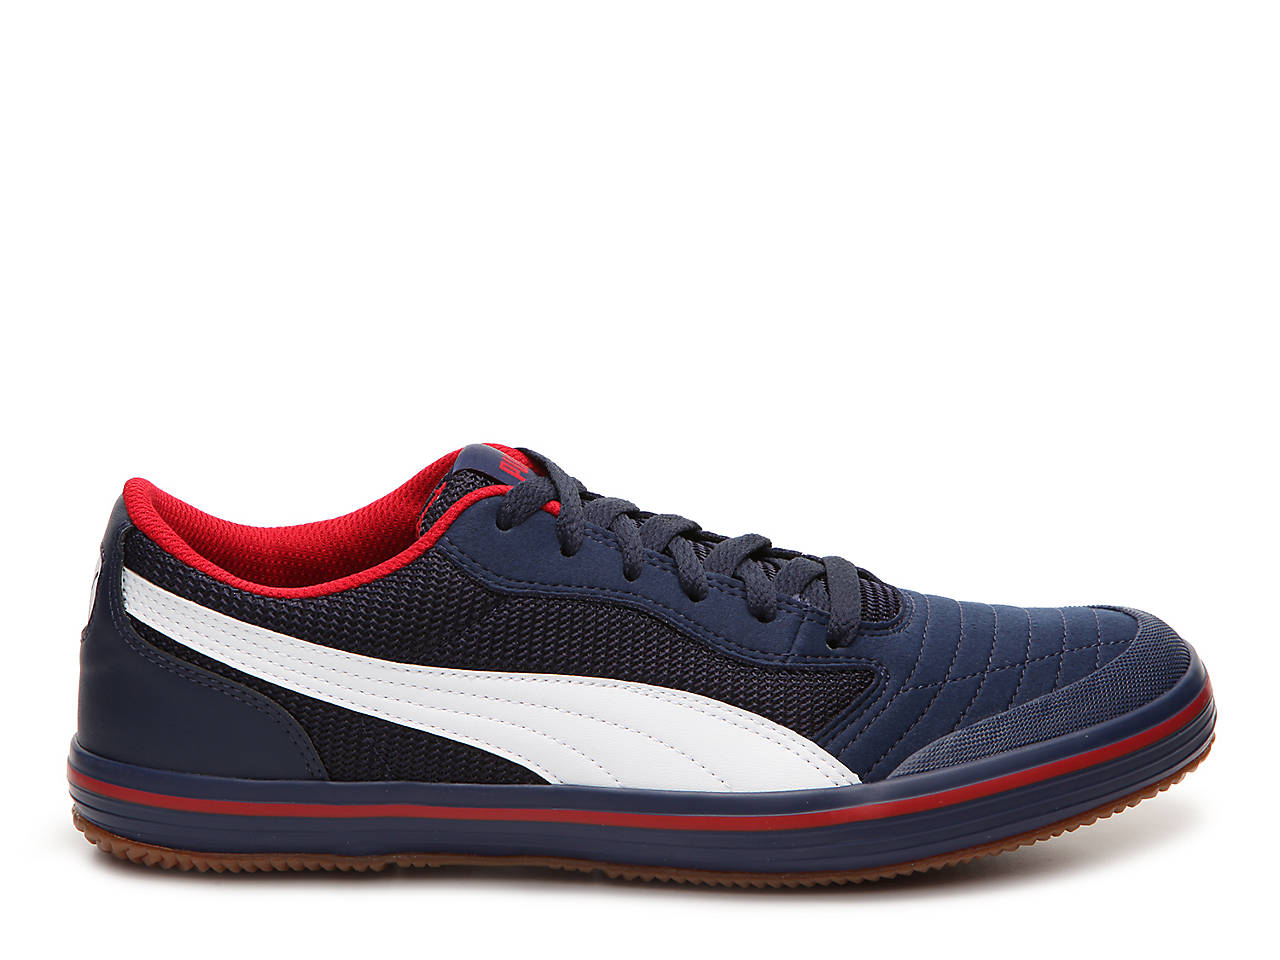 6bc6533bc07 Puma Astro Sala Sneaker - Men s Men s Shoes